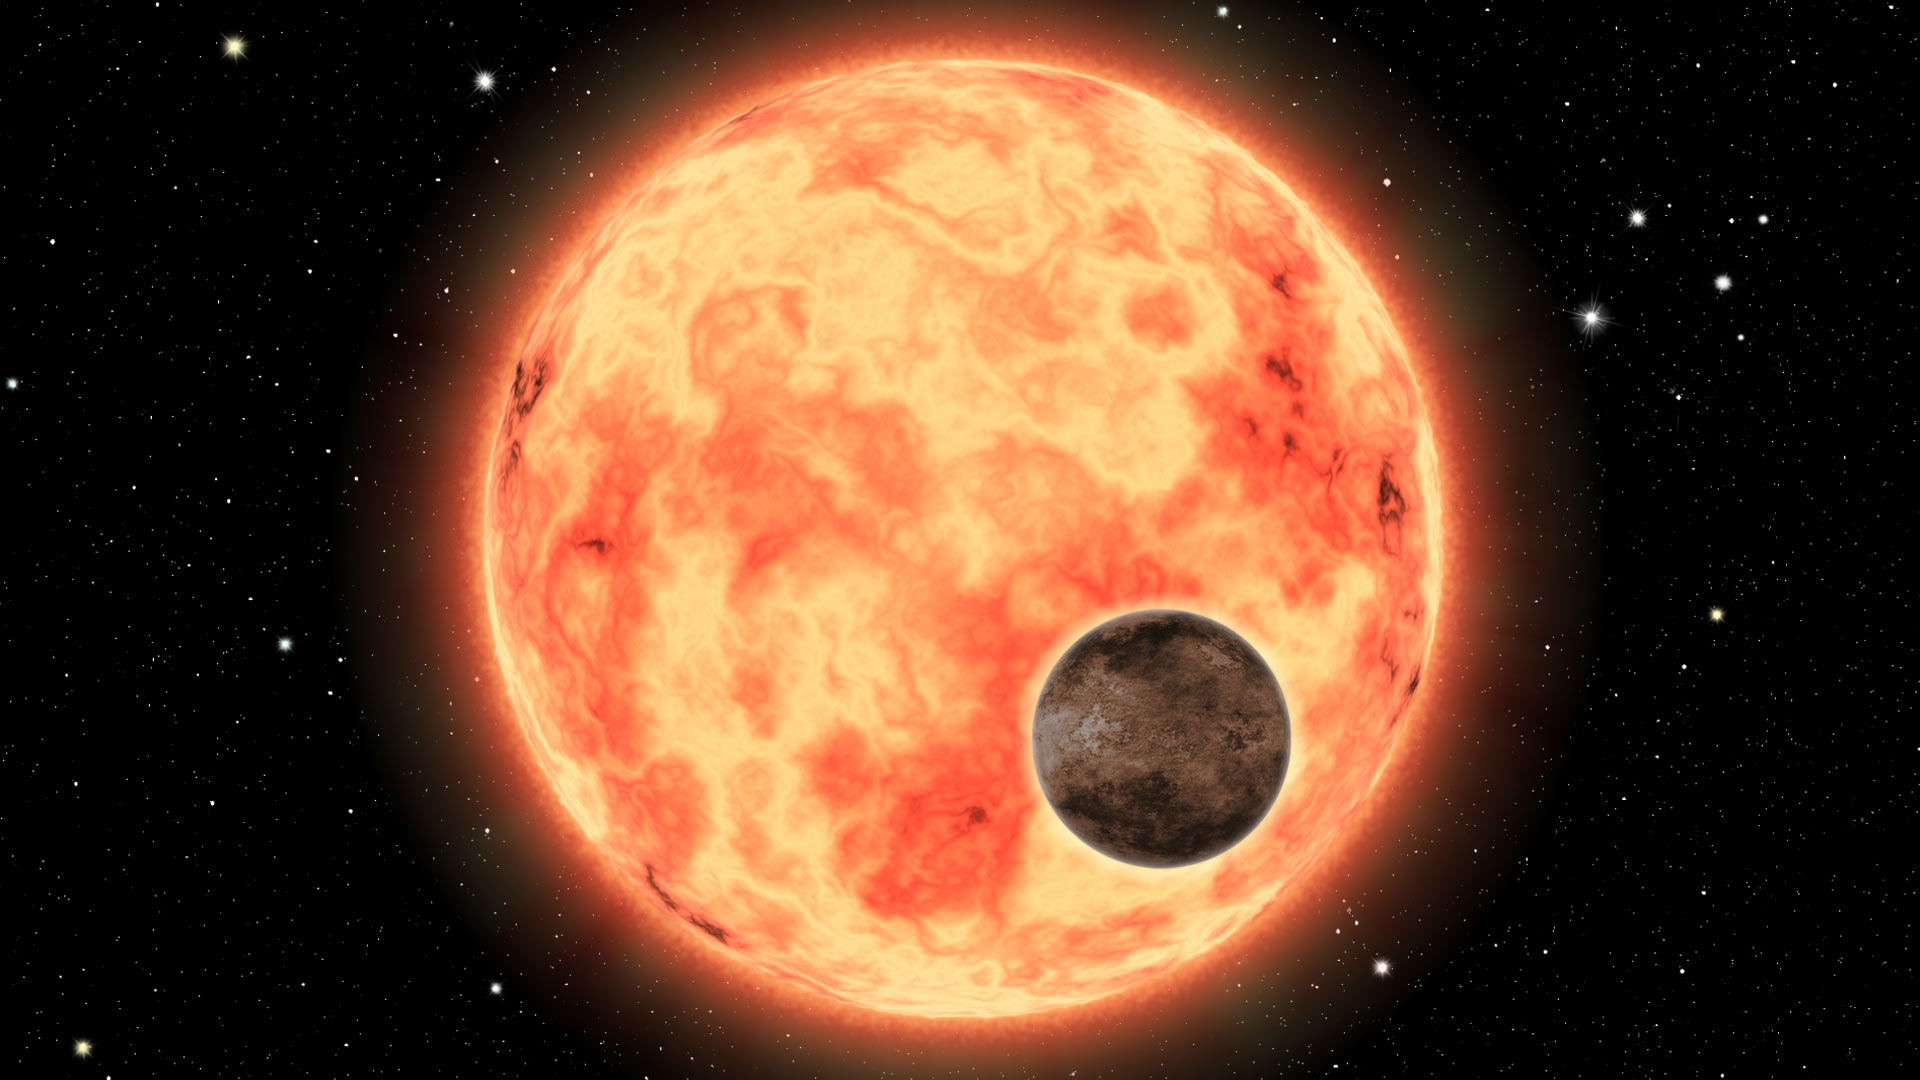 HD 26965b: Super-Earth Found Just 16 Light-Years Away | Astronomy